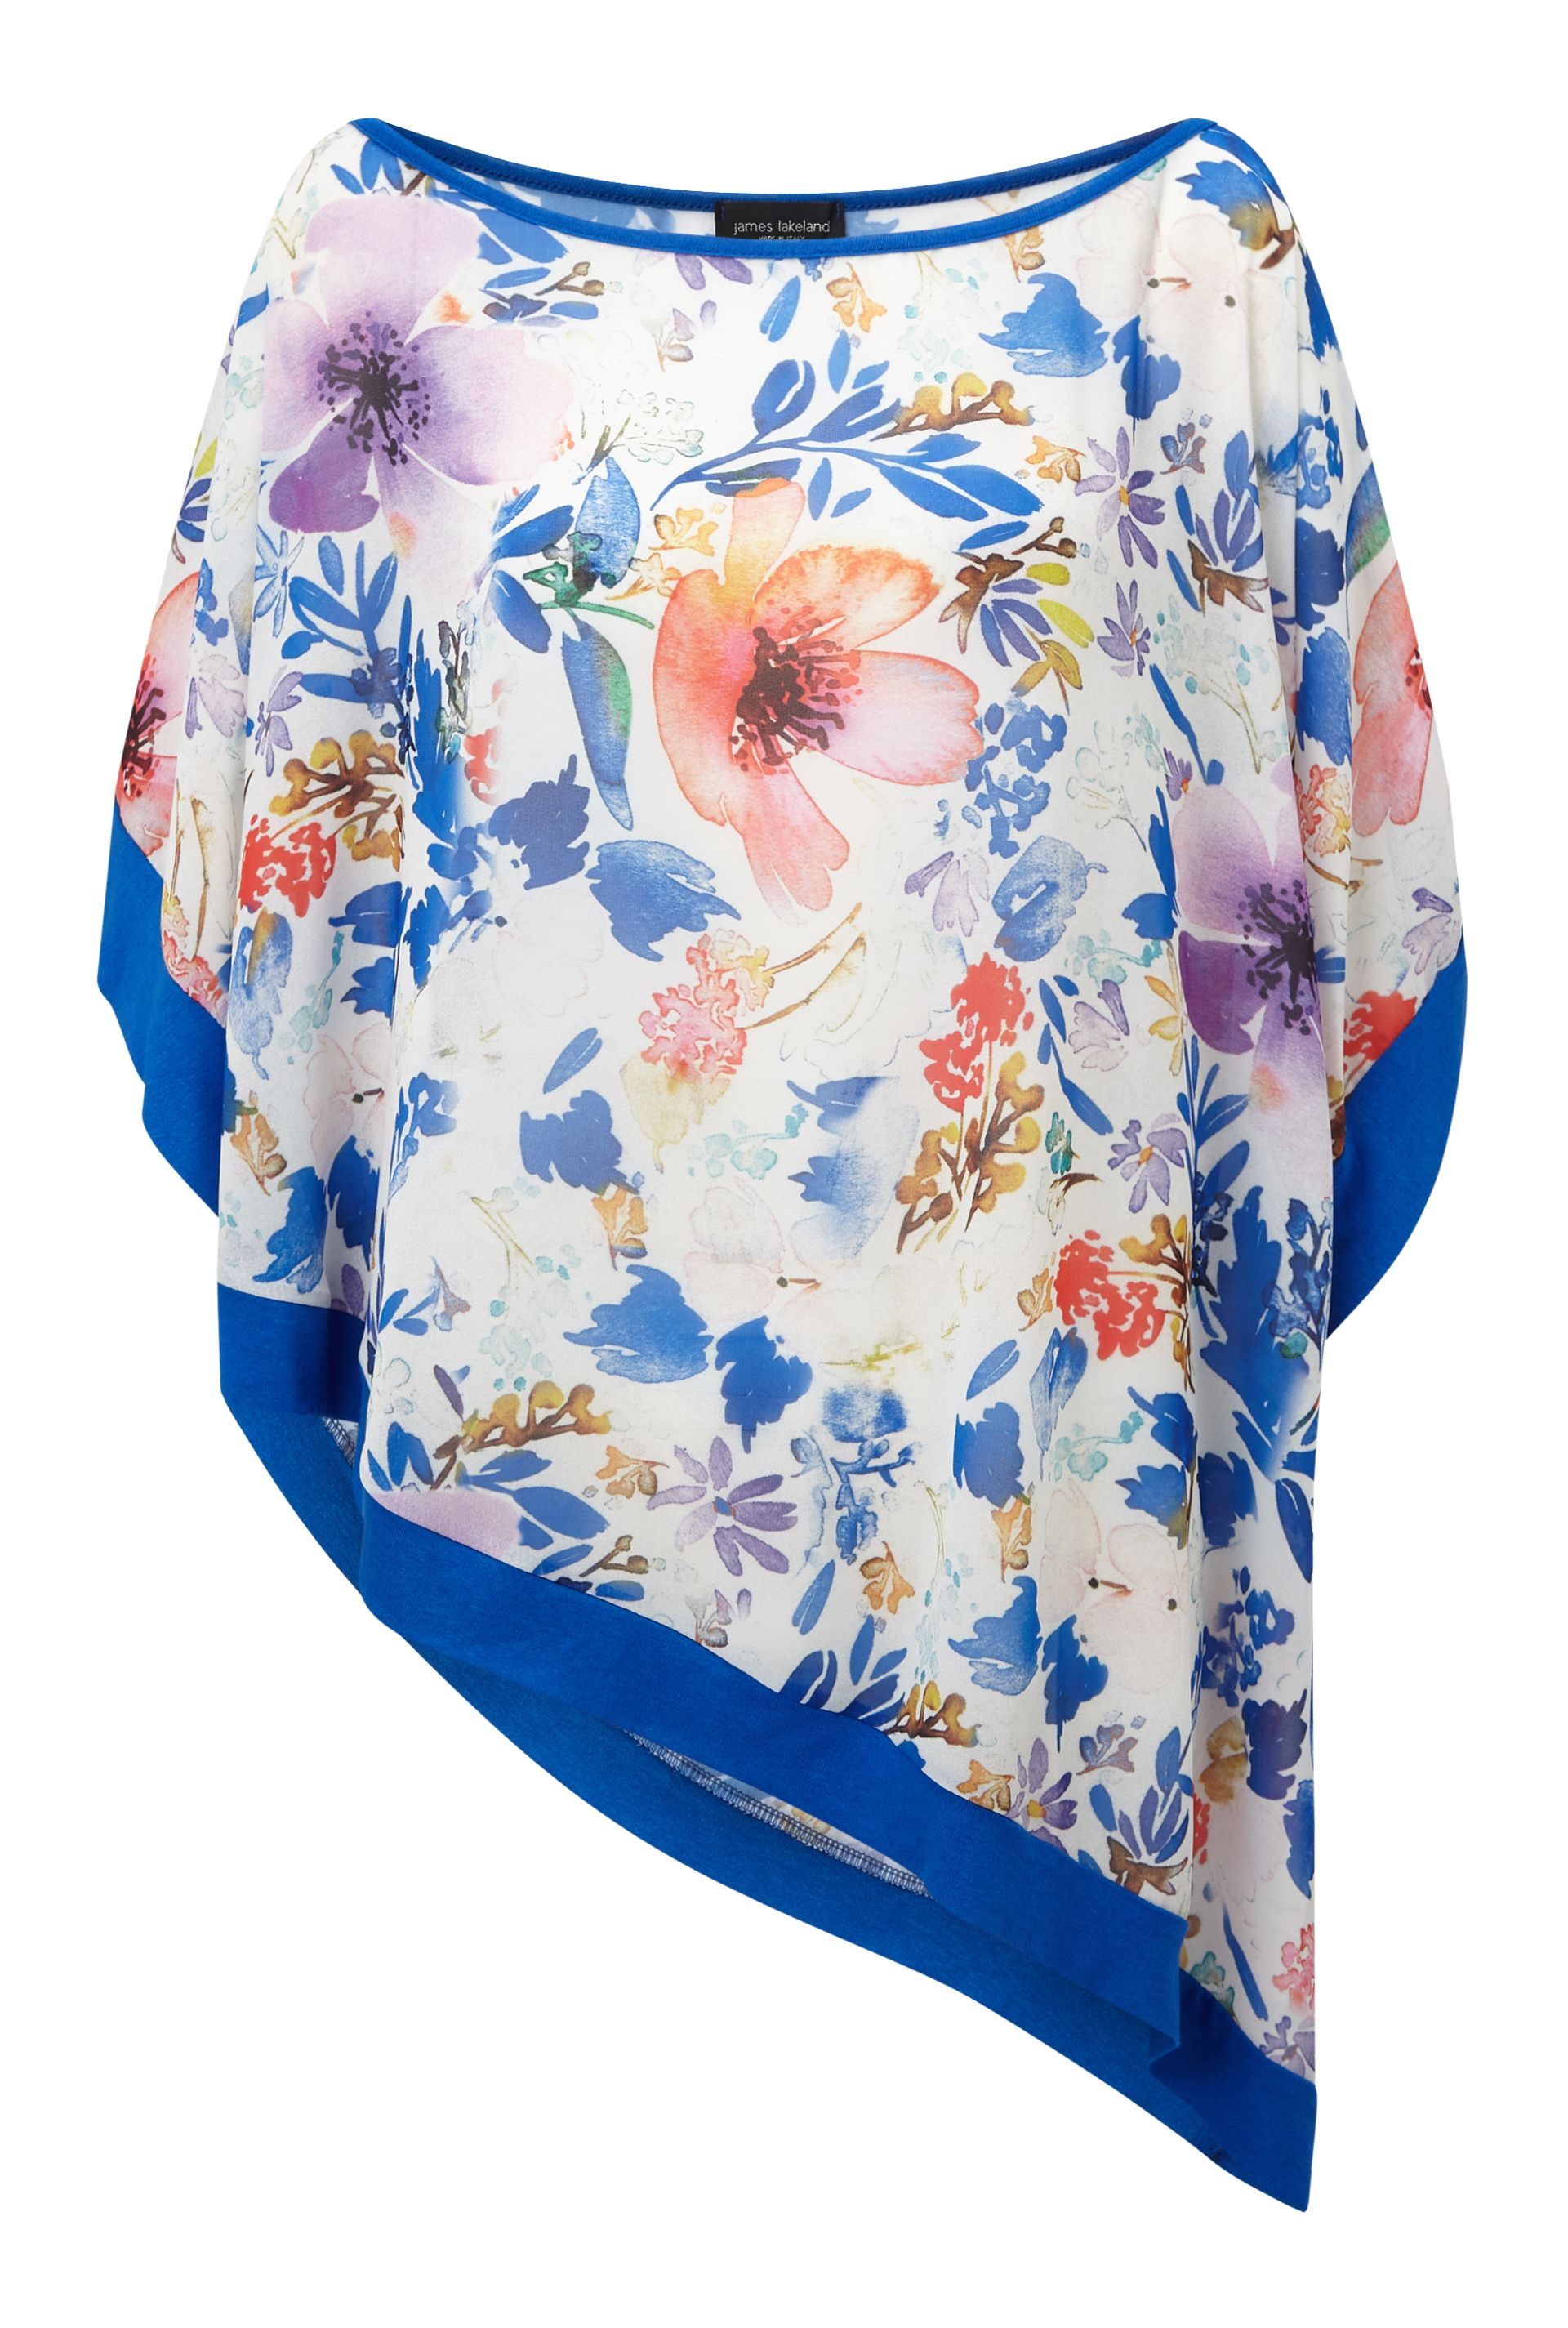 James Lakeland Floral Print Loose Blouse, Multi-Coloured